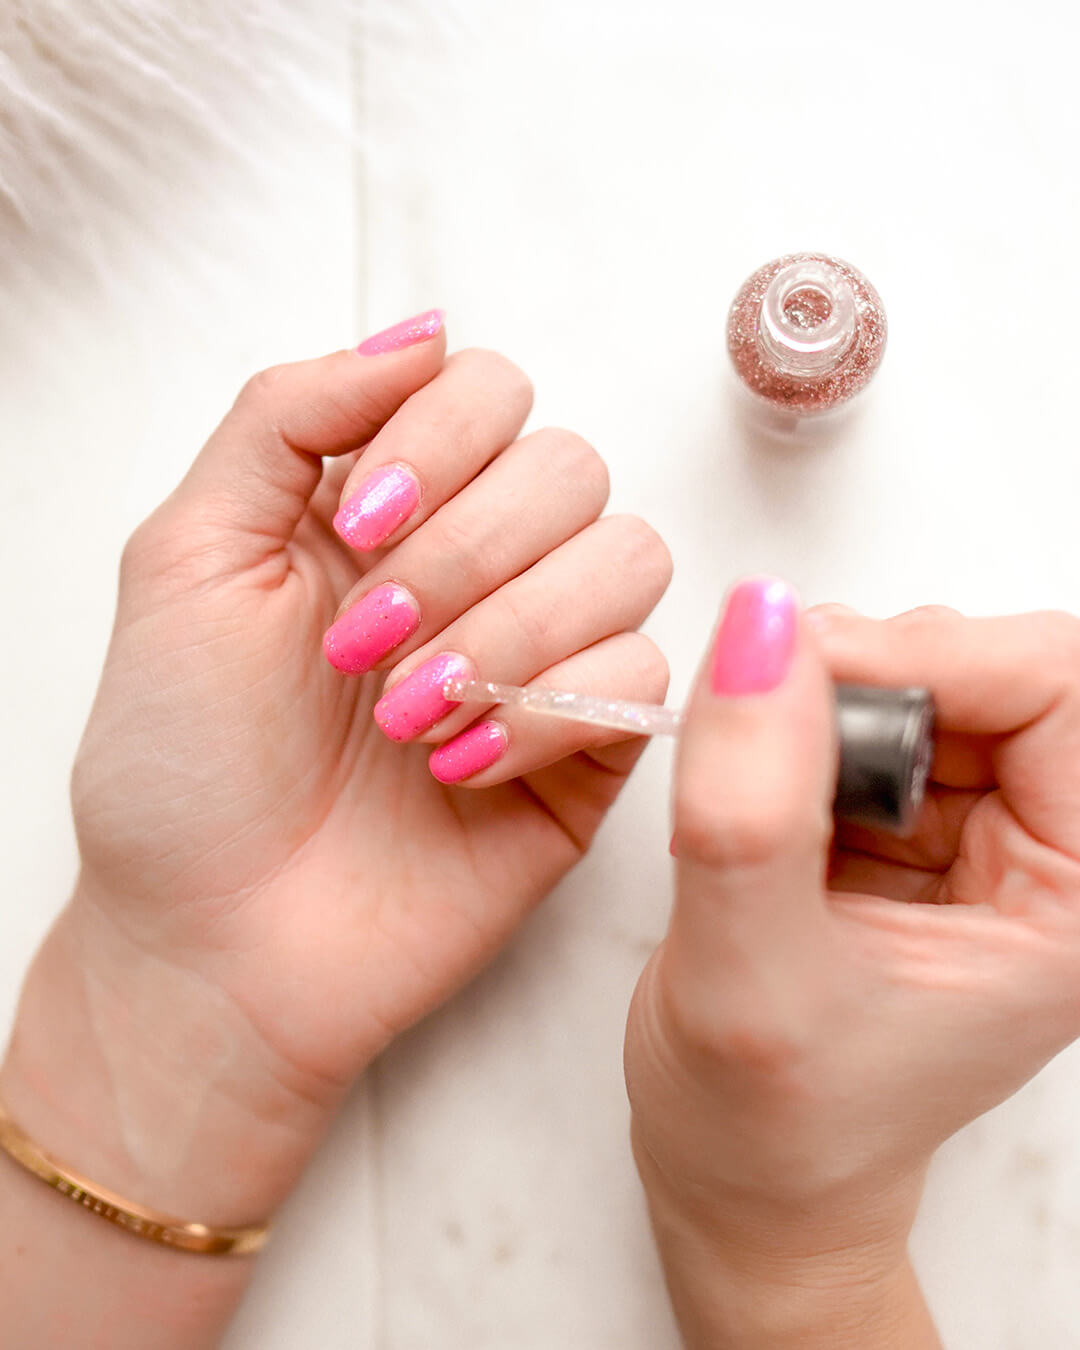 beaty academy treatment nails being painted.